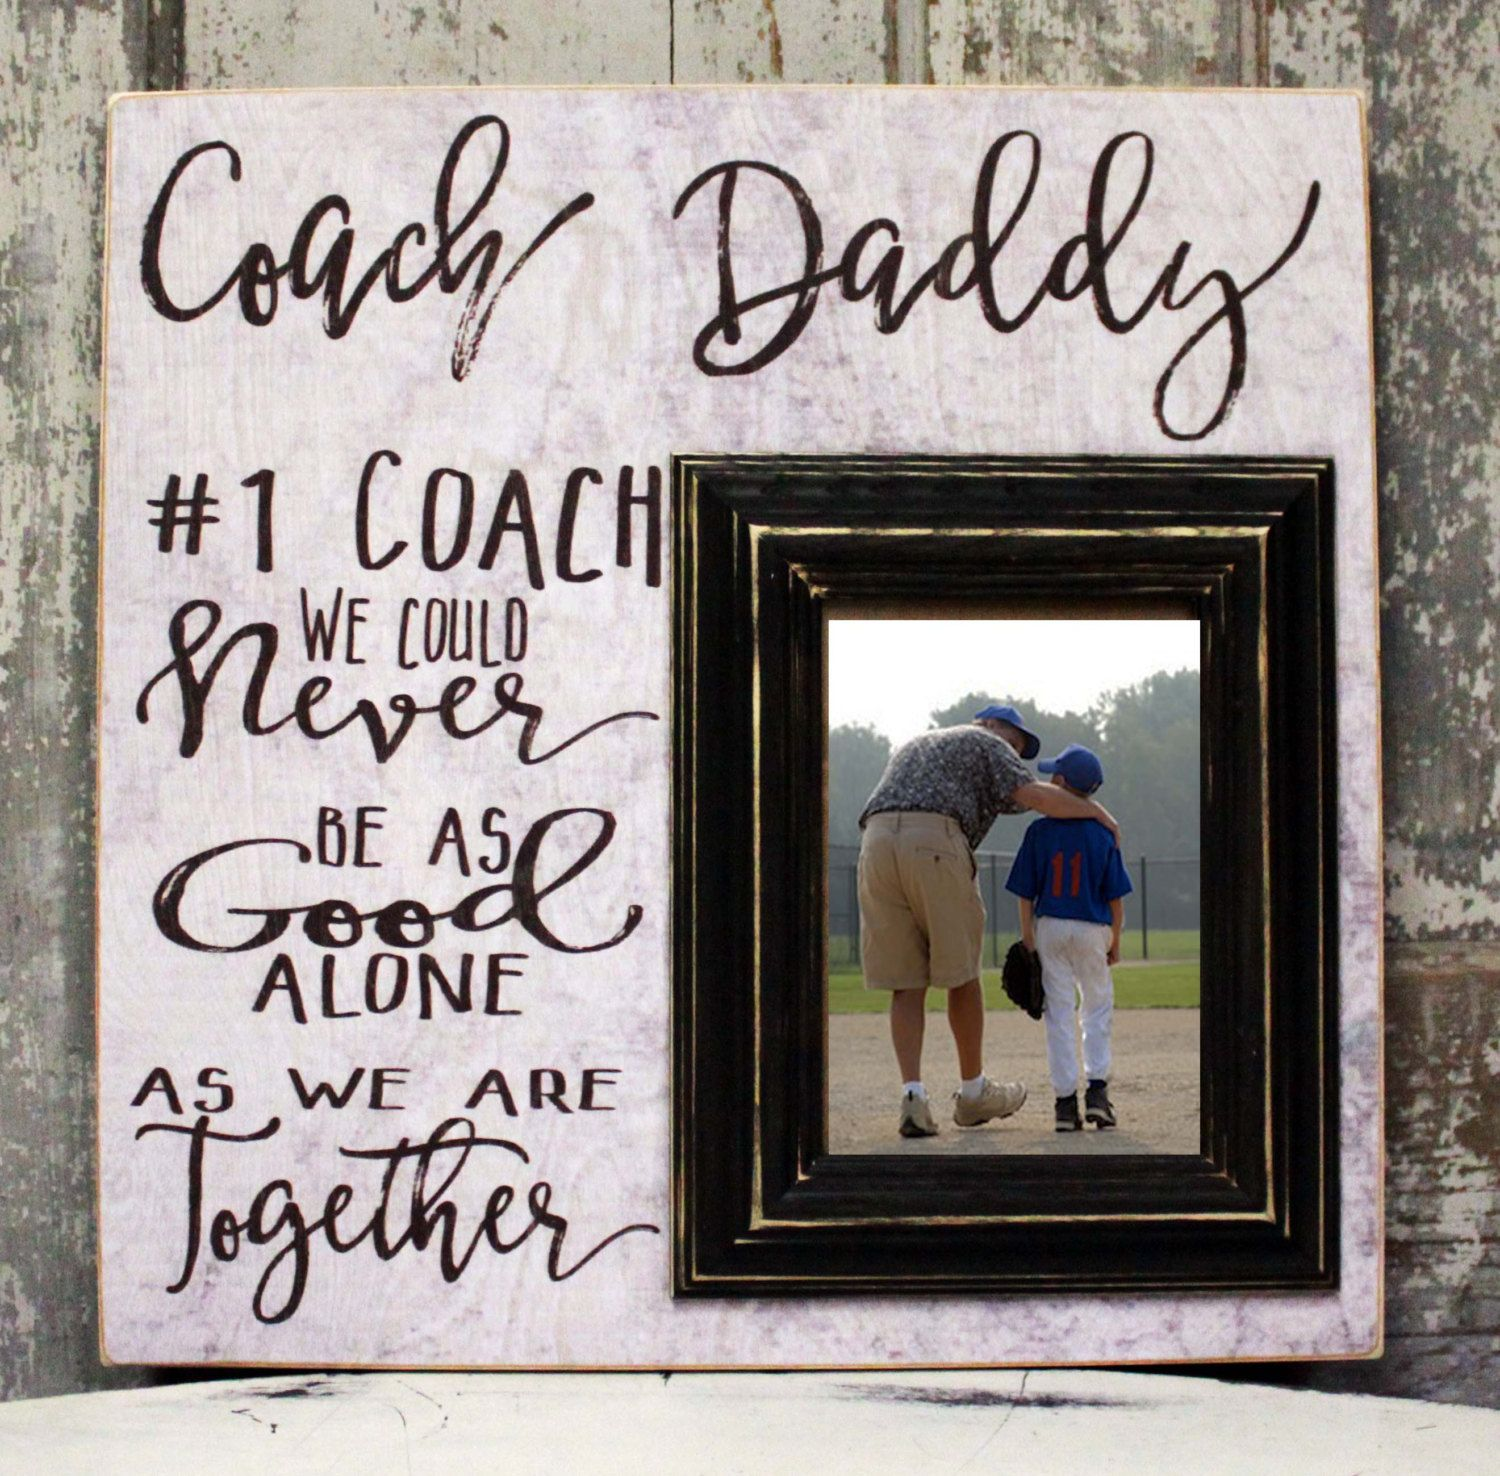 b8e1a0be Coach Dad Picture Frame Gift, #1 Dad Gift, #1 Coach Custom Picture ...